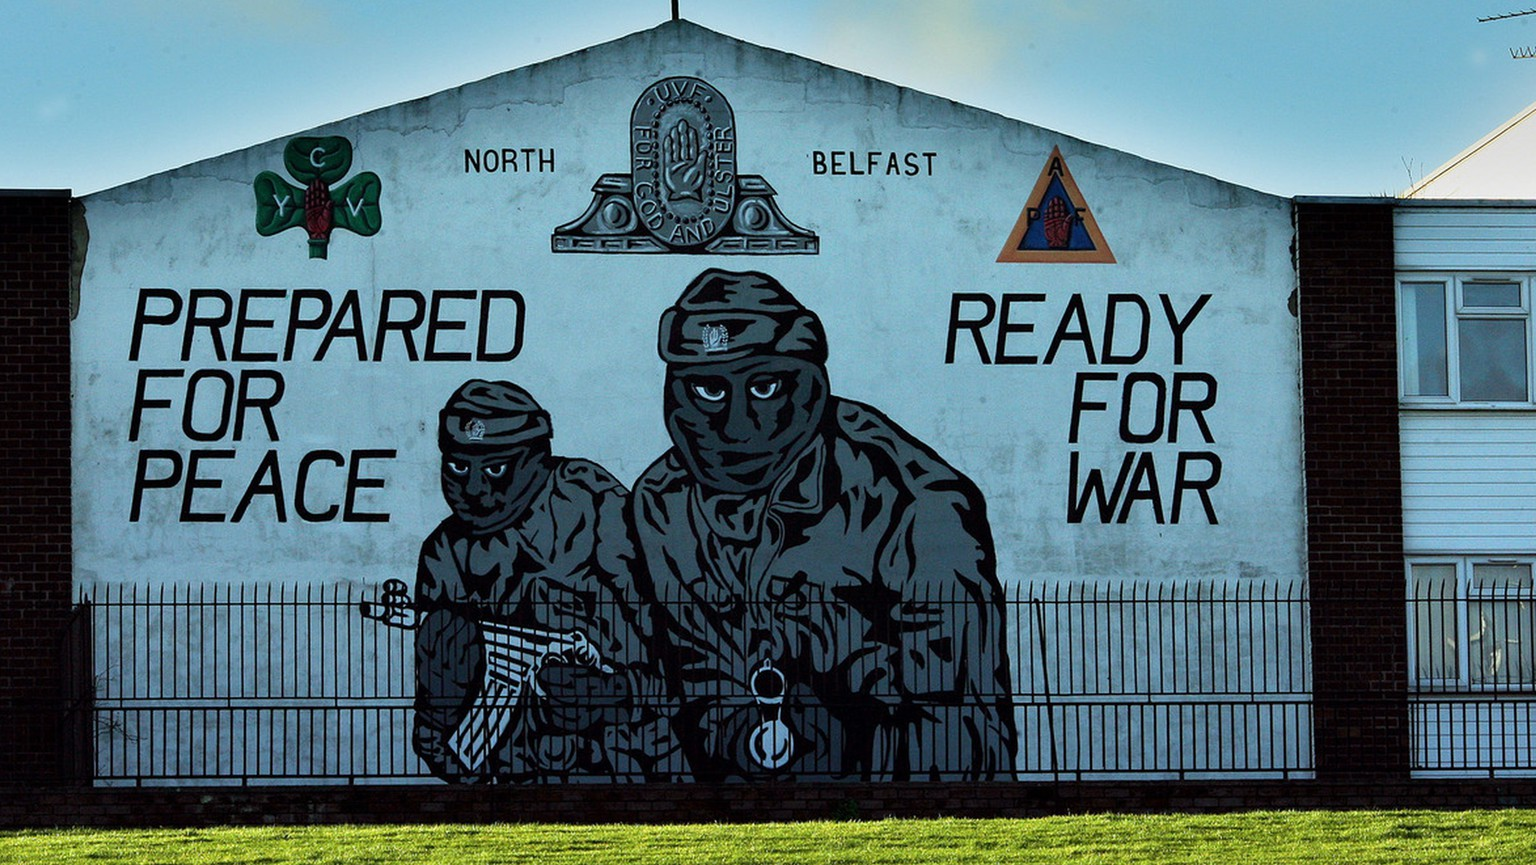 An Ulster Volunteer Force (UVF) mural is seen in north Belfast, Northern Ireland, Monday Jan. 22, 2007. An investigation into collusion between Belfast police and Protestant outlaws has found damning evidence that senior detectives shielded killers from prosecution because they were providing information, Northern Ireland's secretary of state Peter Hain said Monday.  (AP Photo/Peter Morrison)